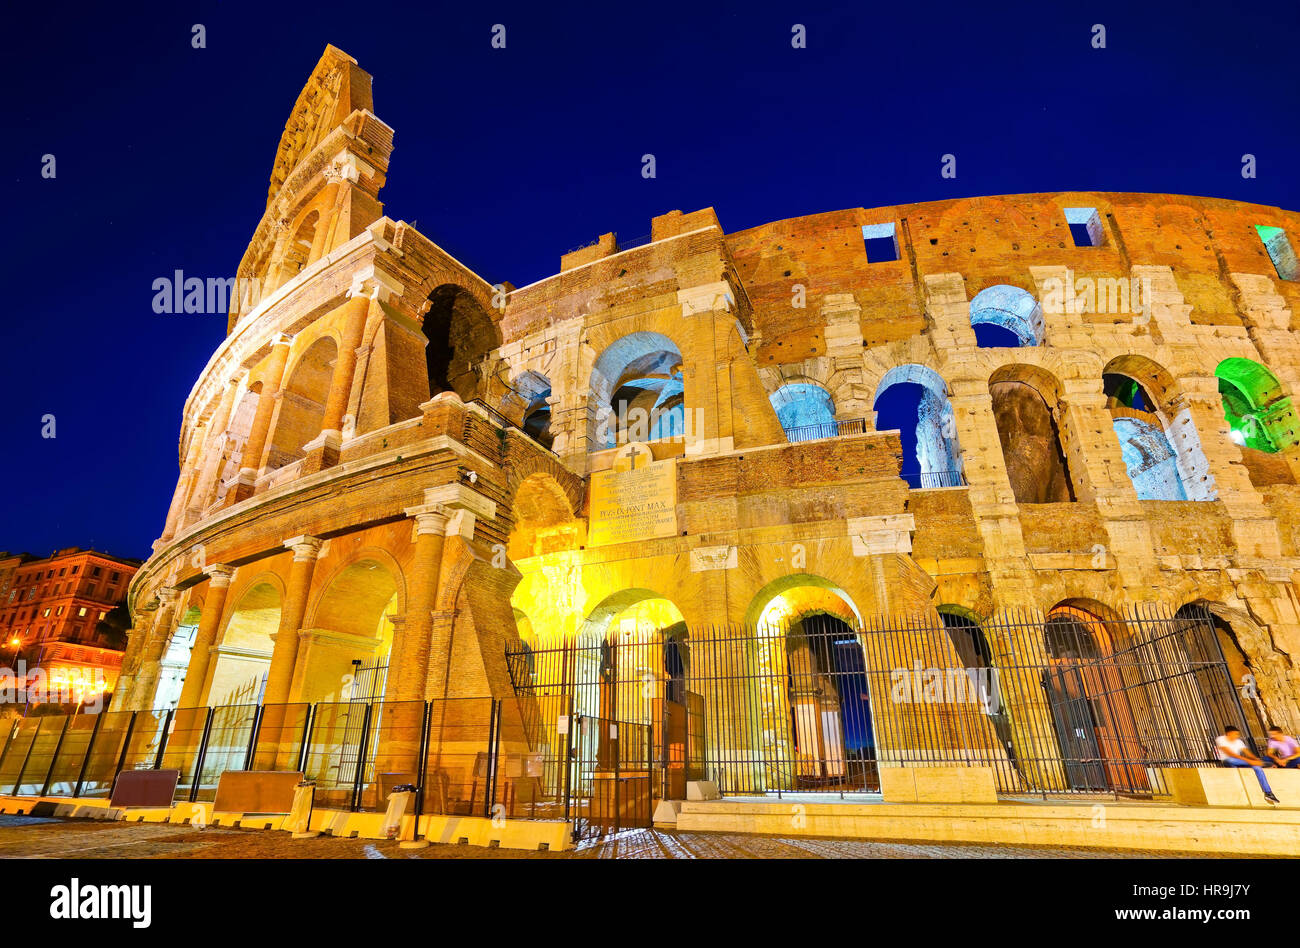 View of Colosseum at night in Rome, Italy - Stock Image